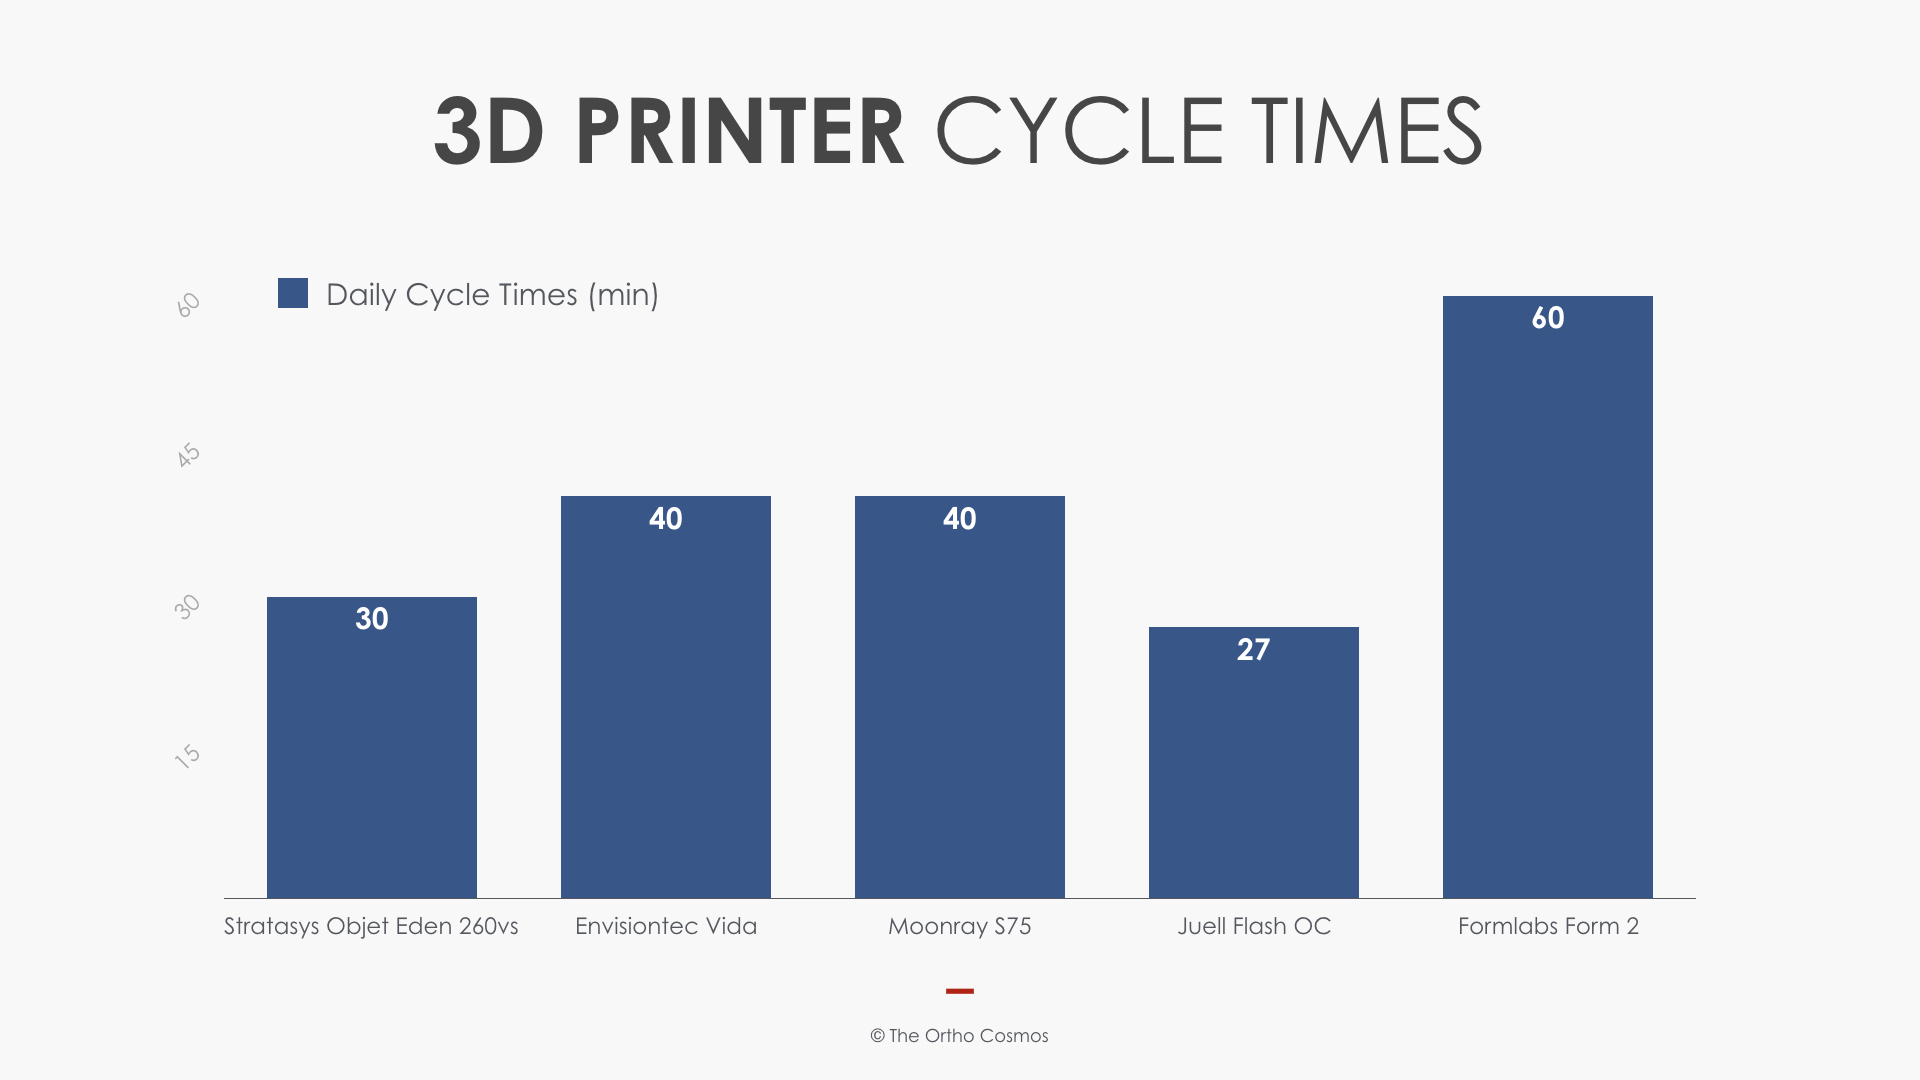 3D Printer Cycle Times